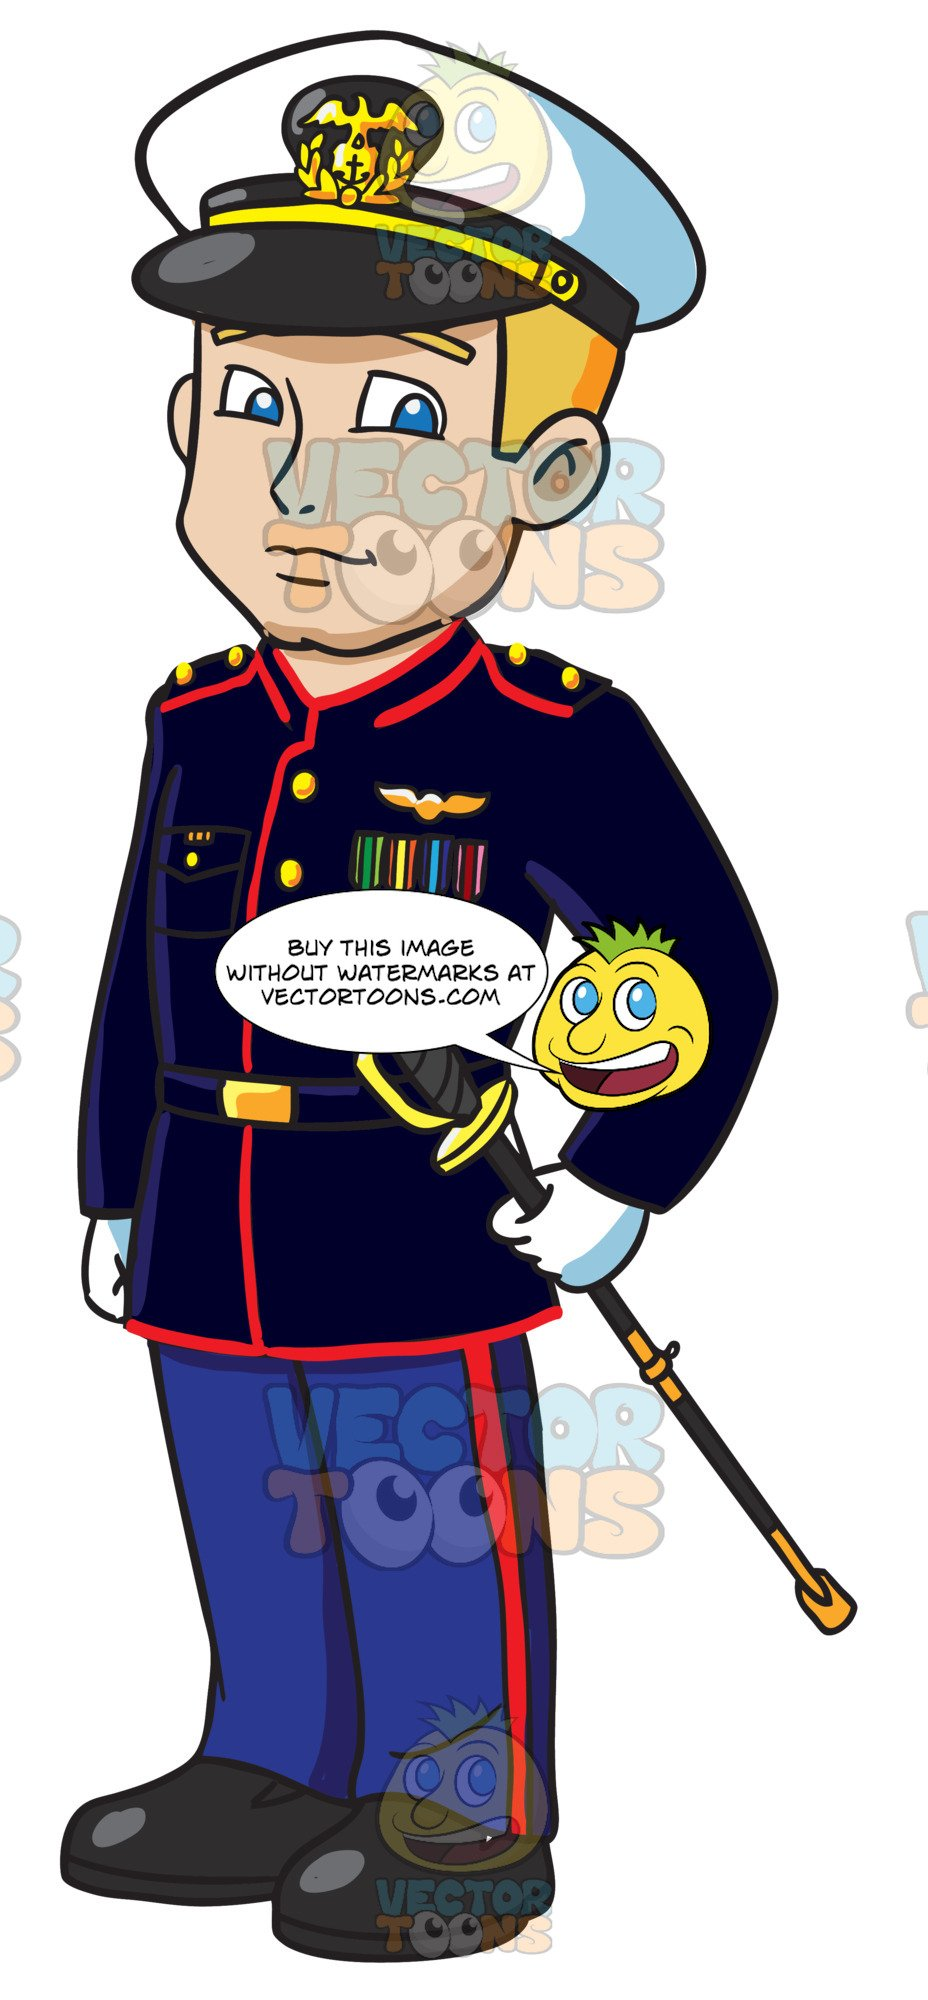 Usmc animated clipart image royalty free download A Us Marines Officer Dressed For A Formal Occasion image royalty free download